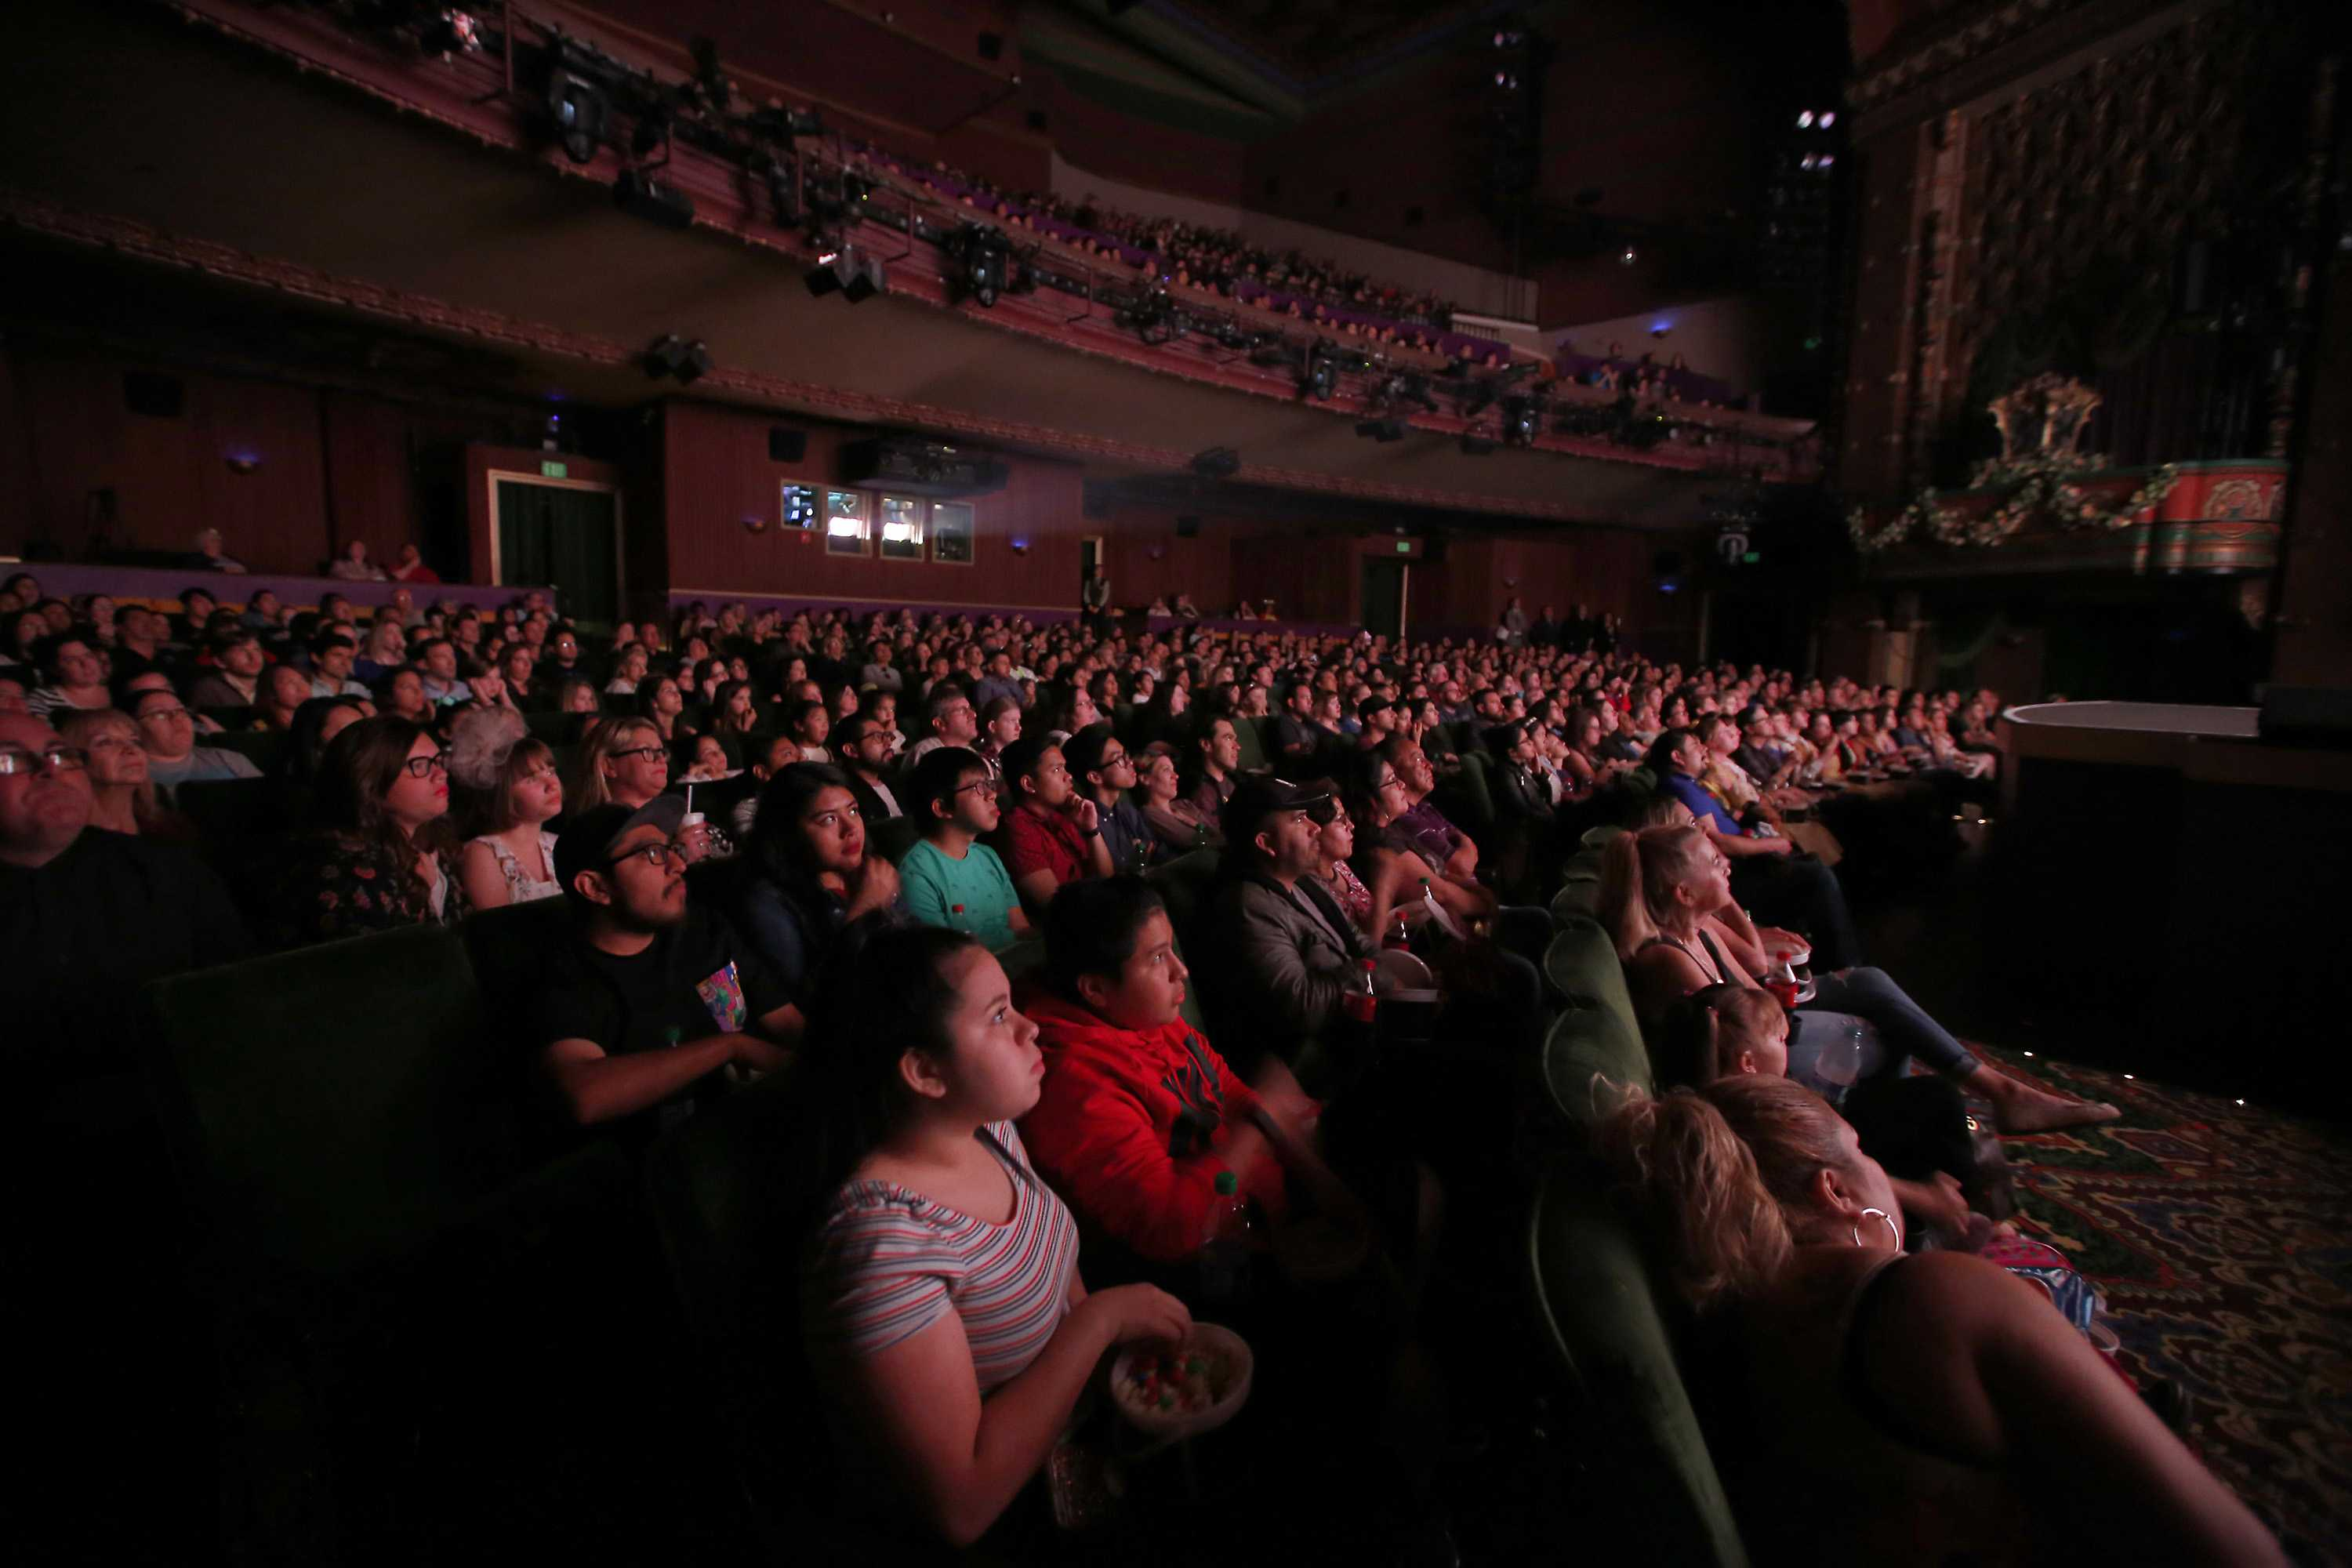 the El Capitain theater appears to be booked to capacity for the premiere of Beauty and the Beast